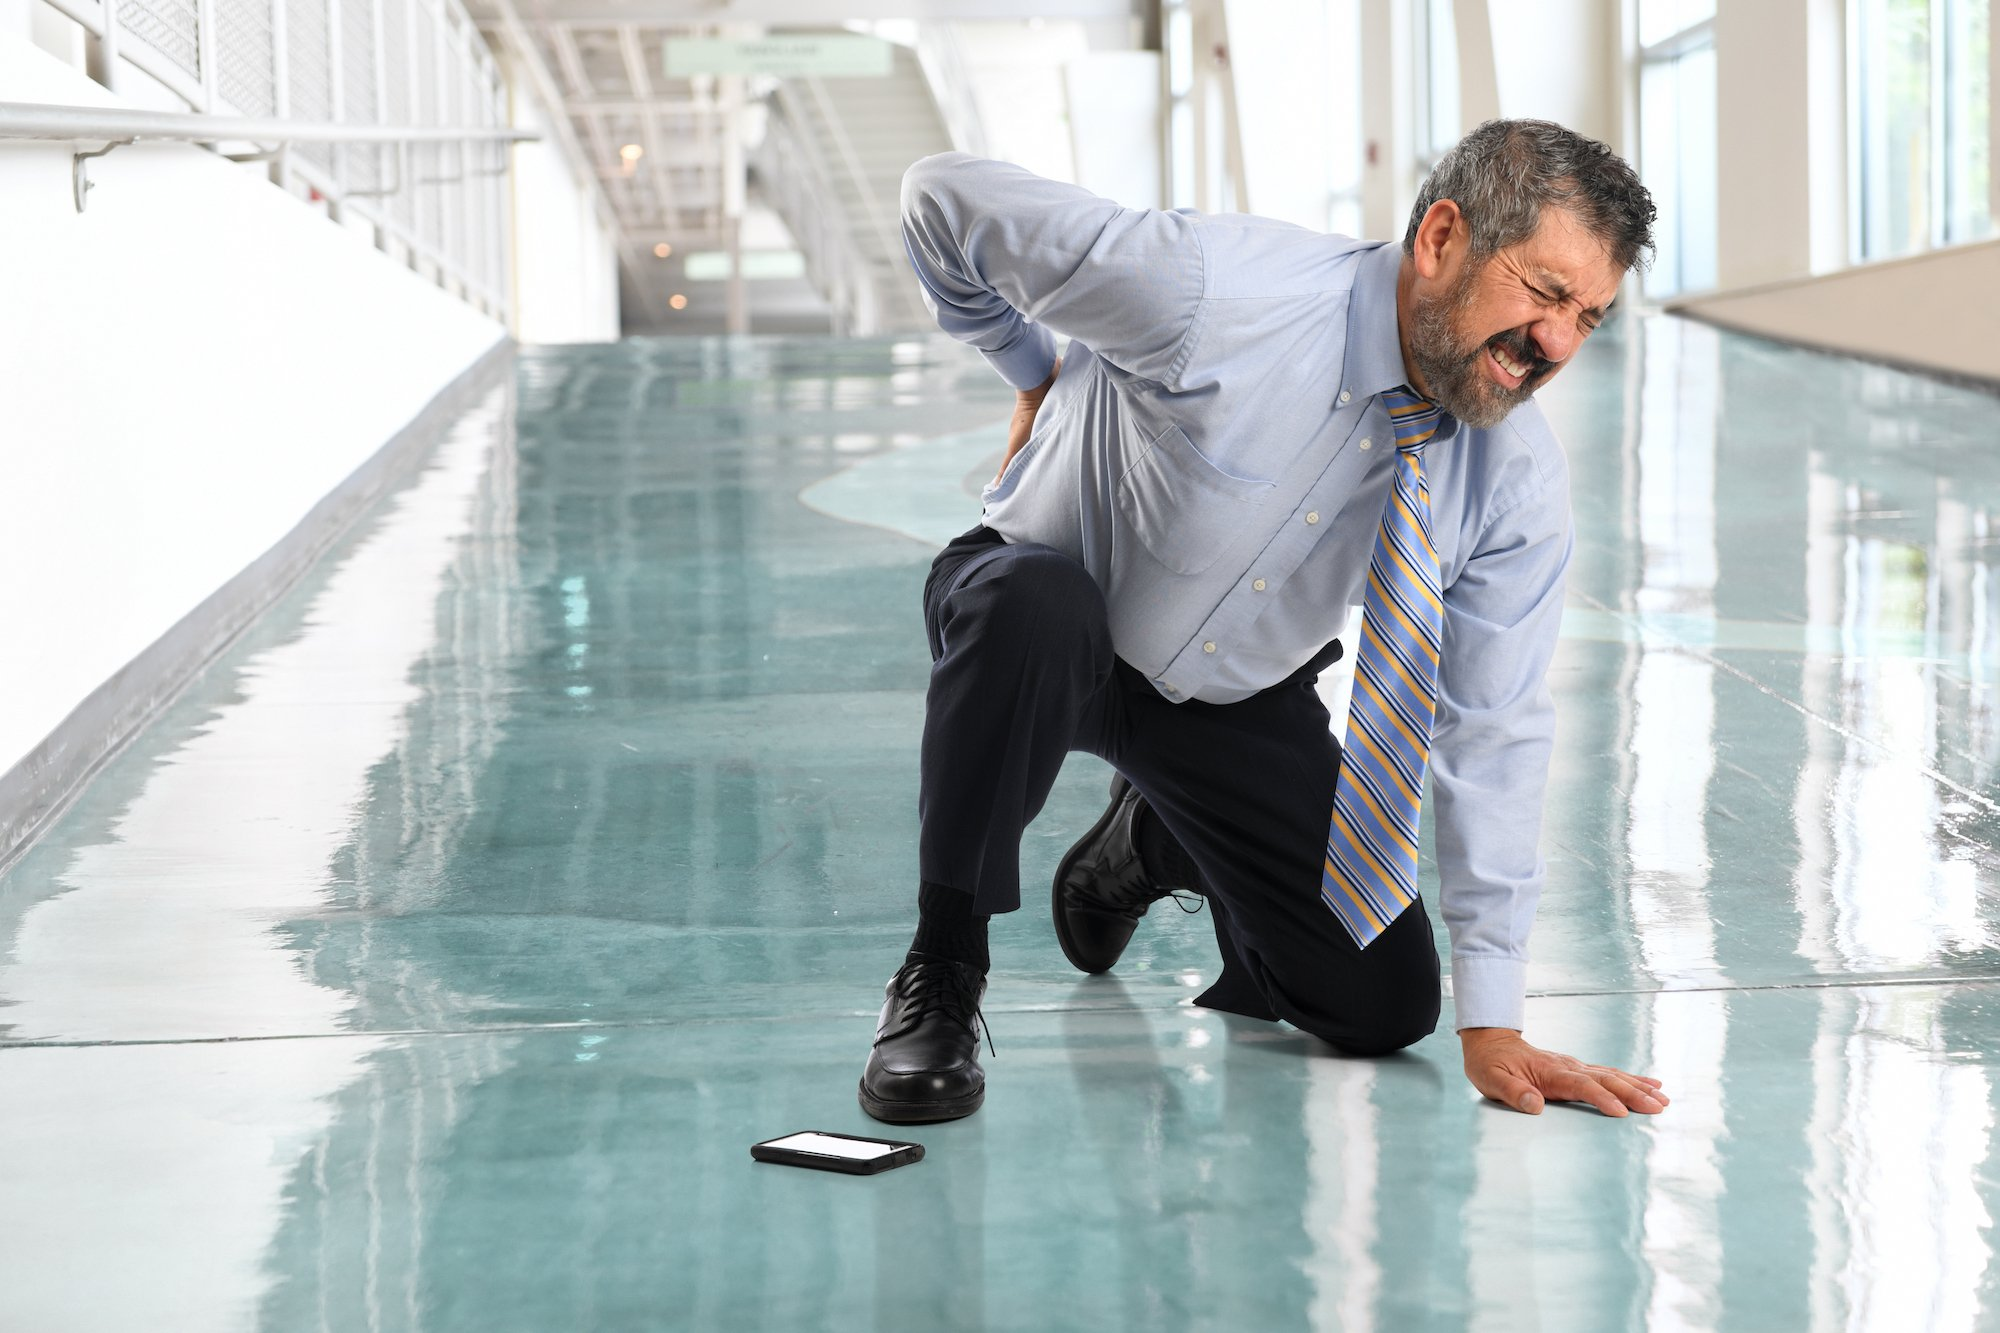 workers comp injury